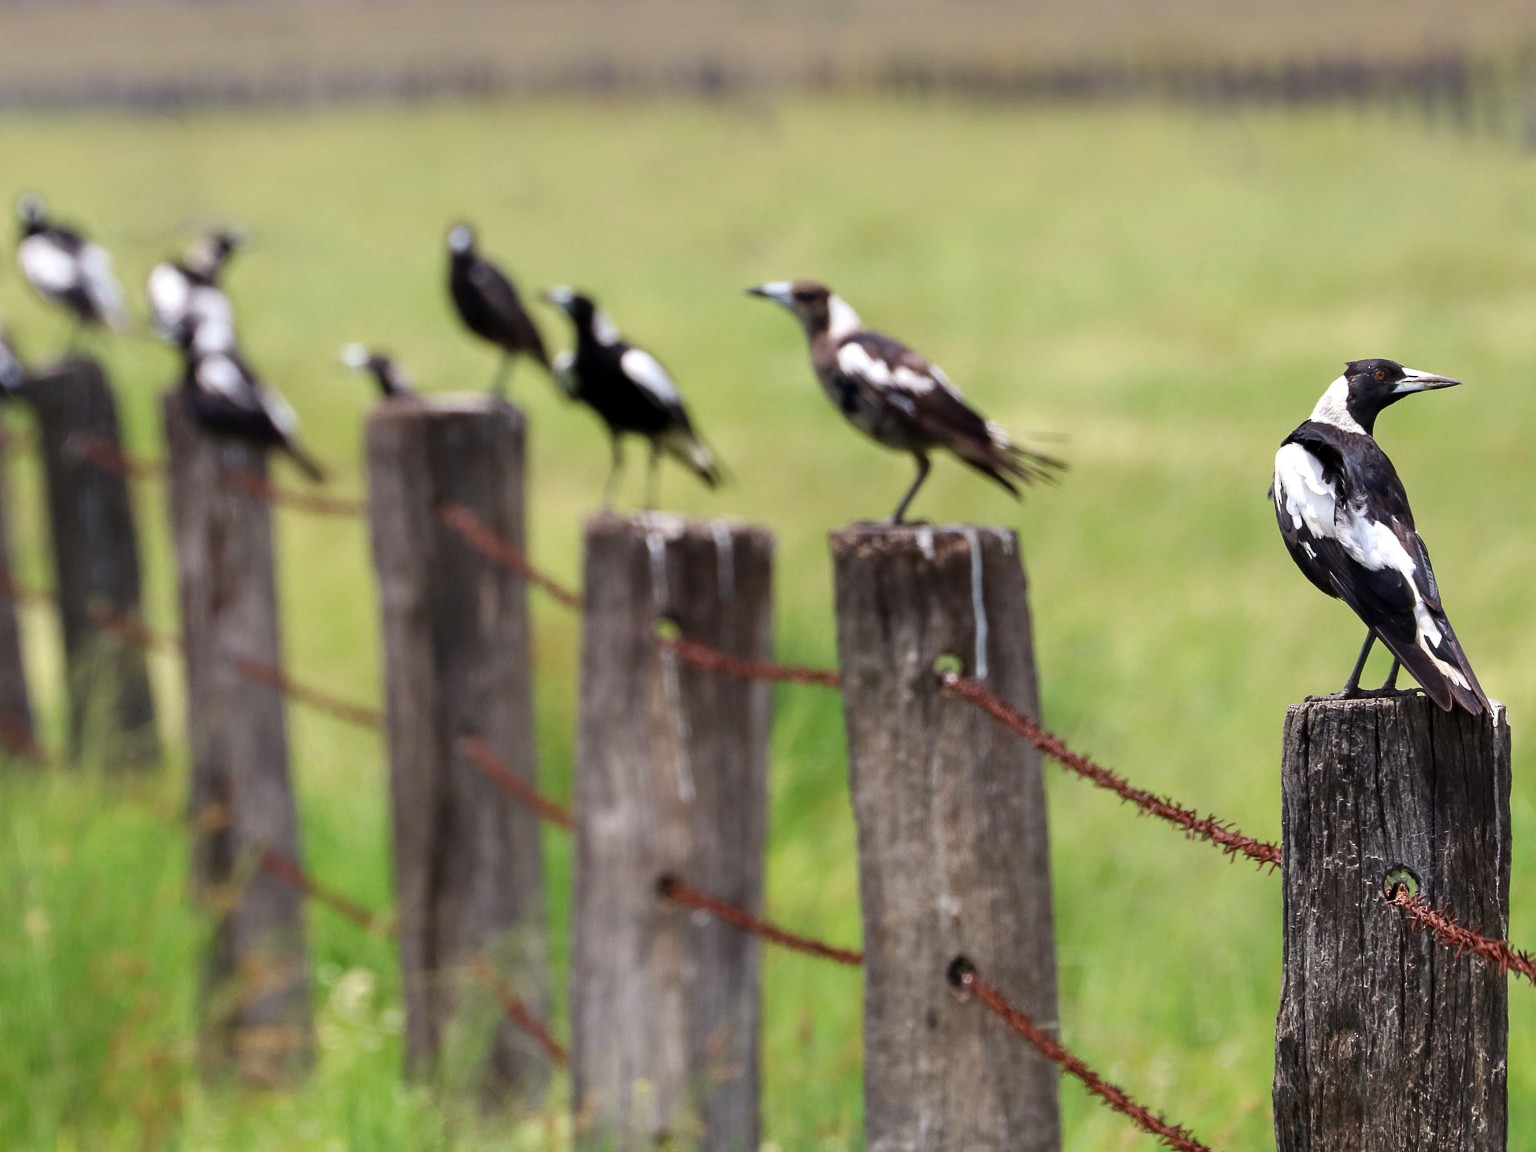 Australian Magpie - Ged Tranter